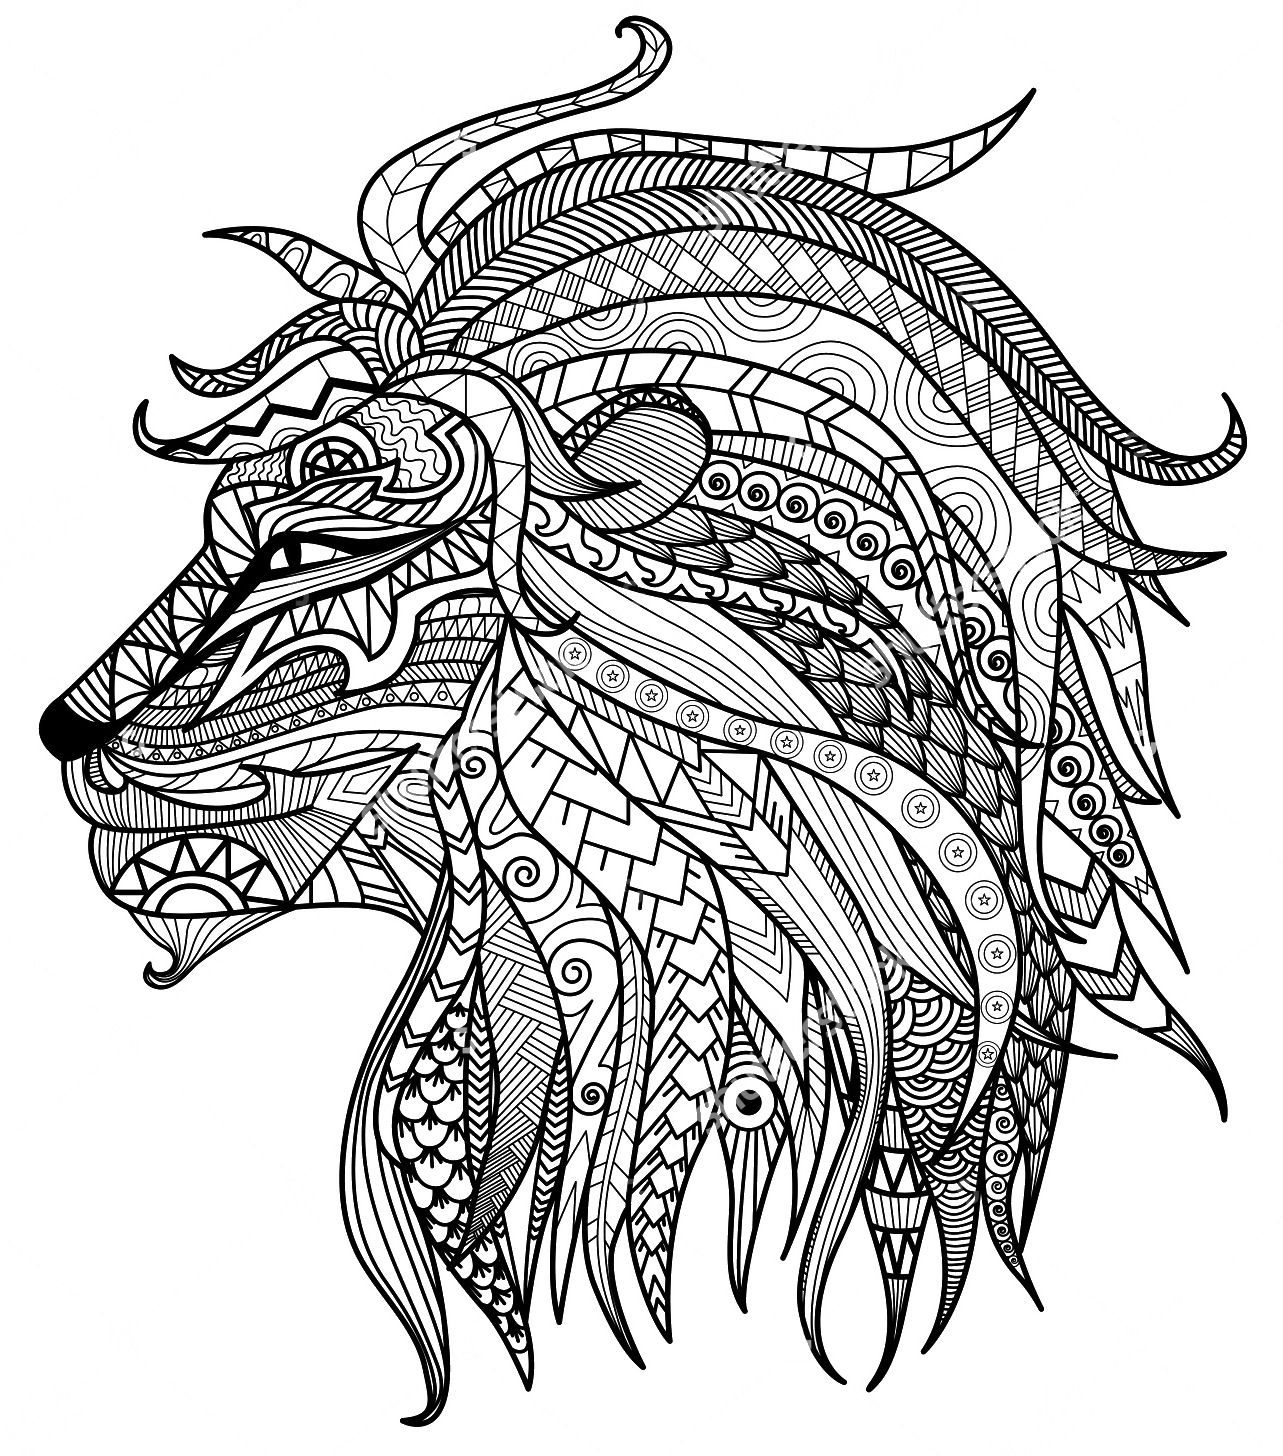 Coloring Pages Lion Head Coloring Page headphone doodle coloring do you and kid adult pages lion head